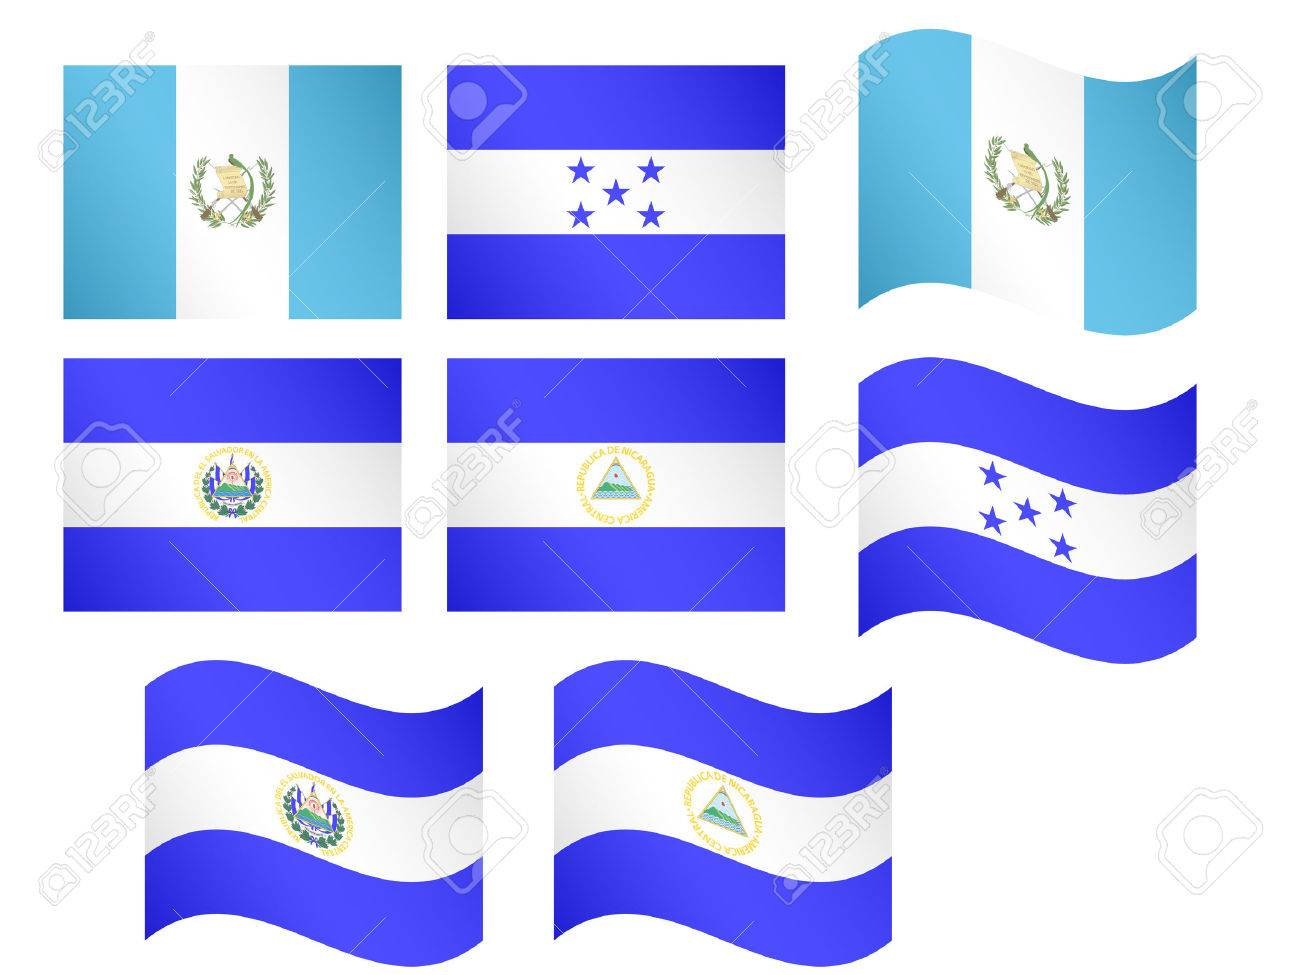 central america flags 1 eps 10 royalty free cliparts vectors and